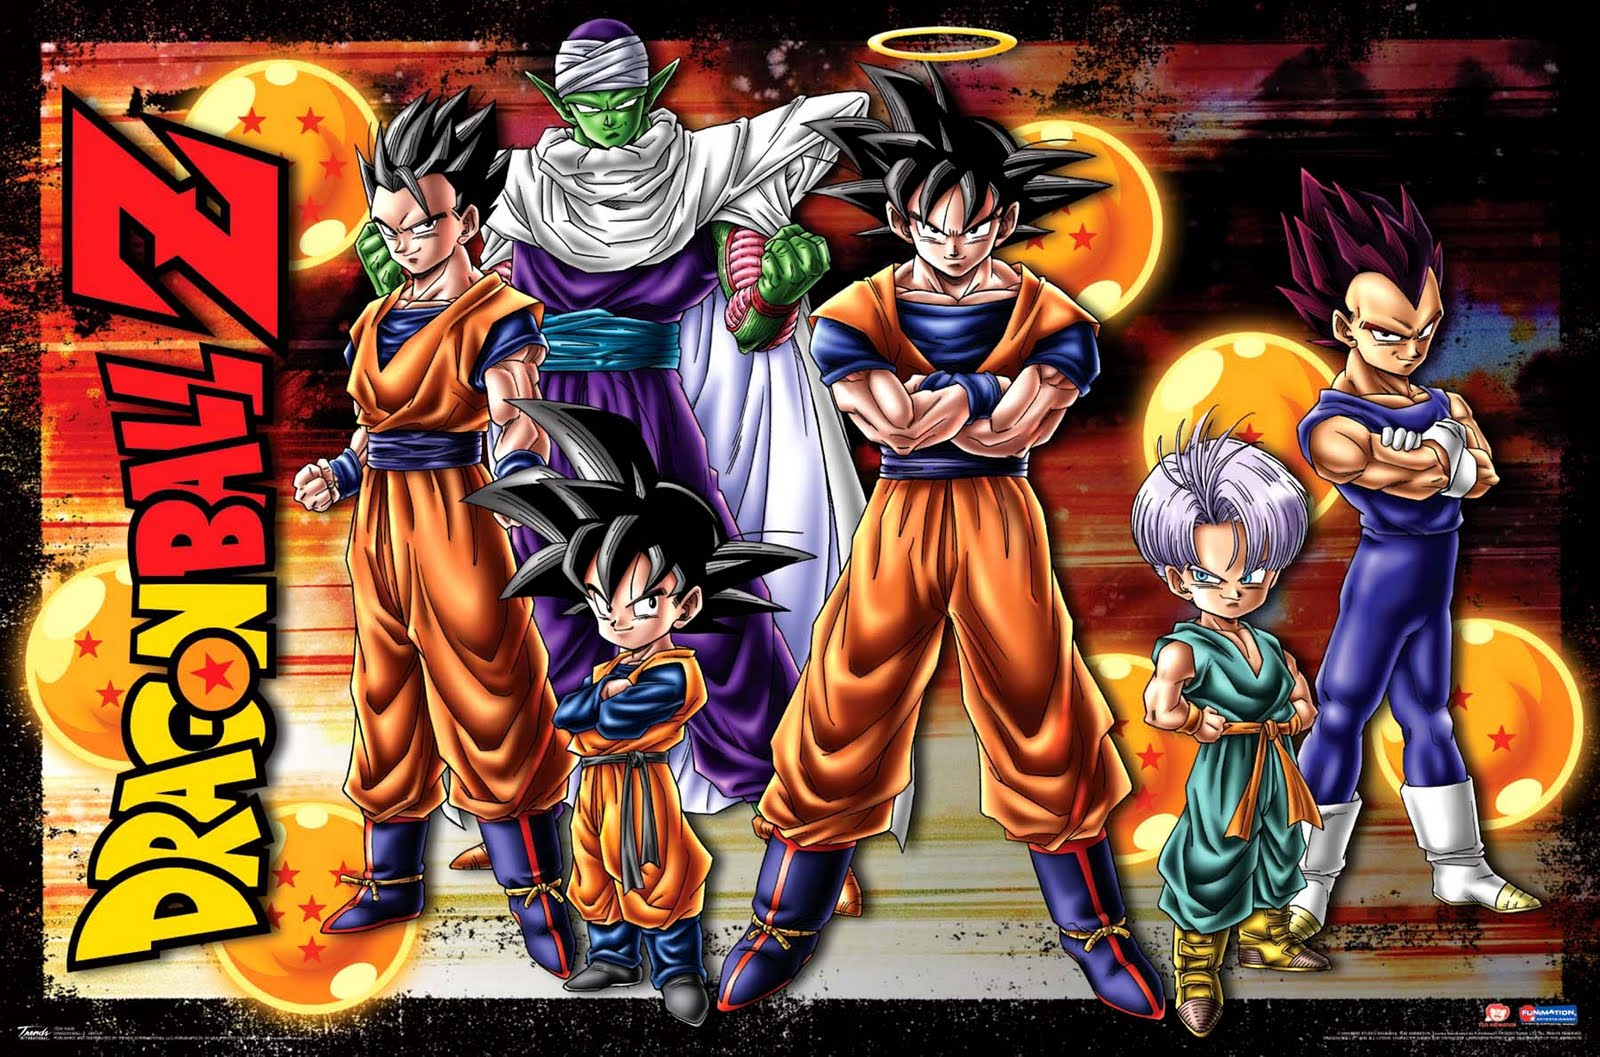 La saga de Dragon Ball